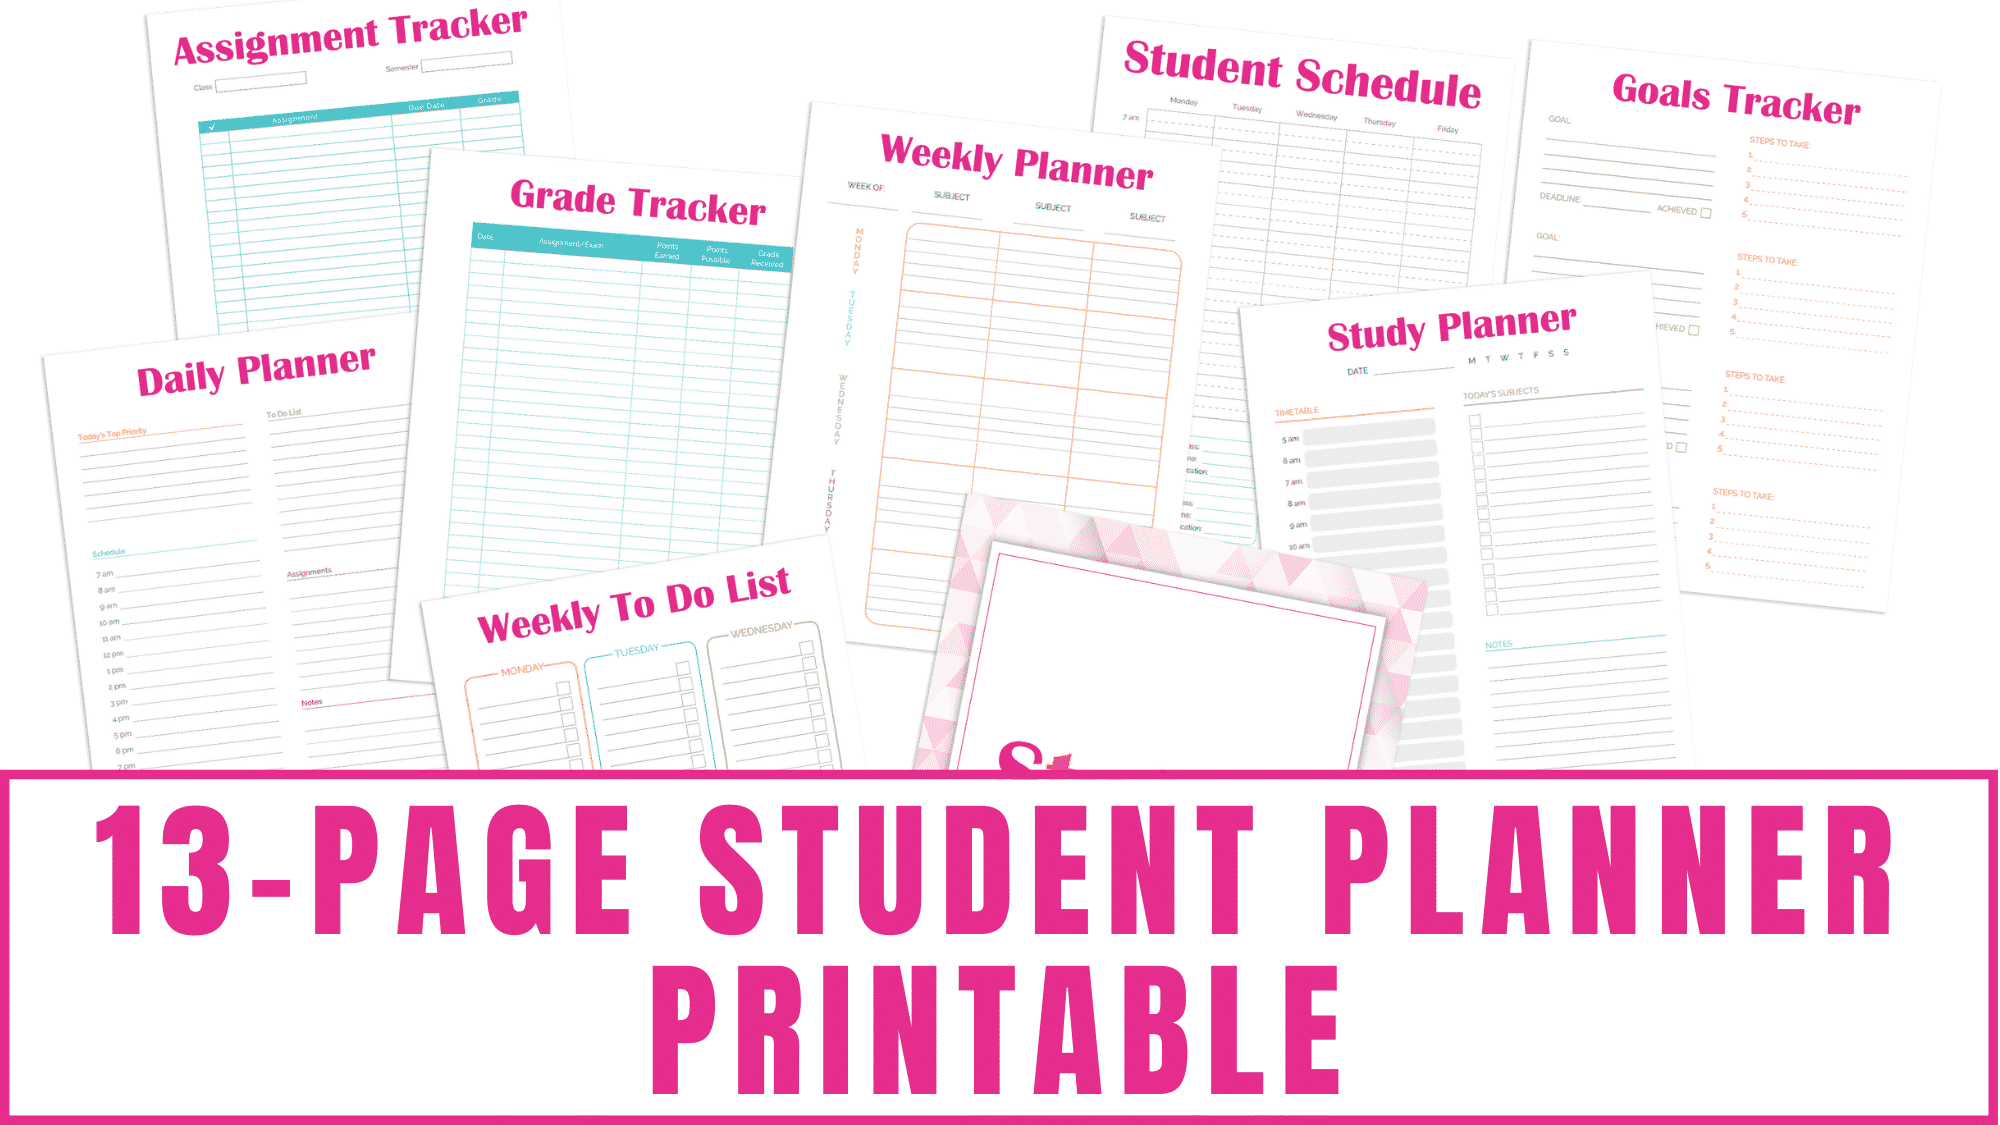 If you are looking for a student planner printable that is packed with organization you are in the right place. This printable student planner includes a daily planner, a class schedule template, a study planner, a weekly to do list, a goal tracker template, a 2-page student weekly planner, a grade tracker printable, an assignment tracker template, and a notes page.